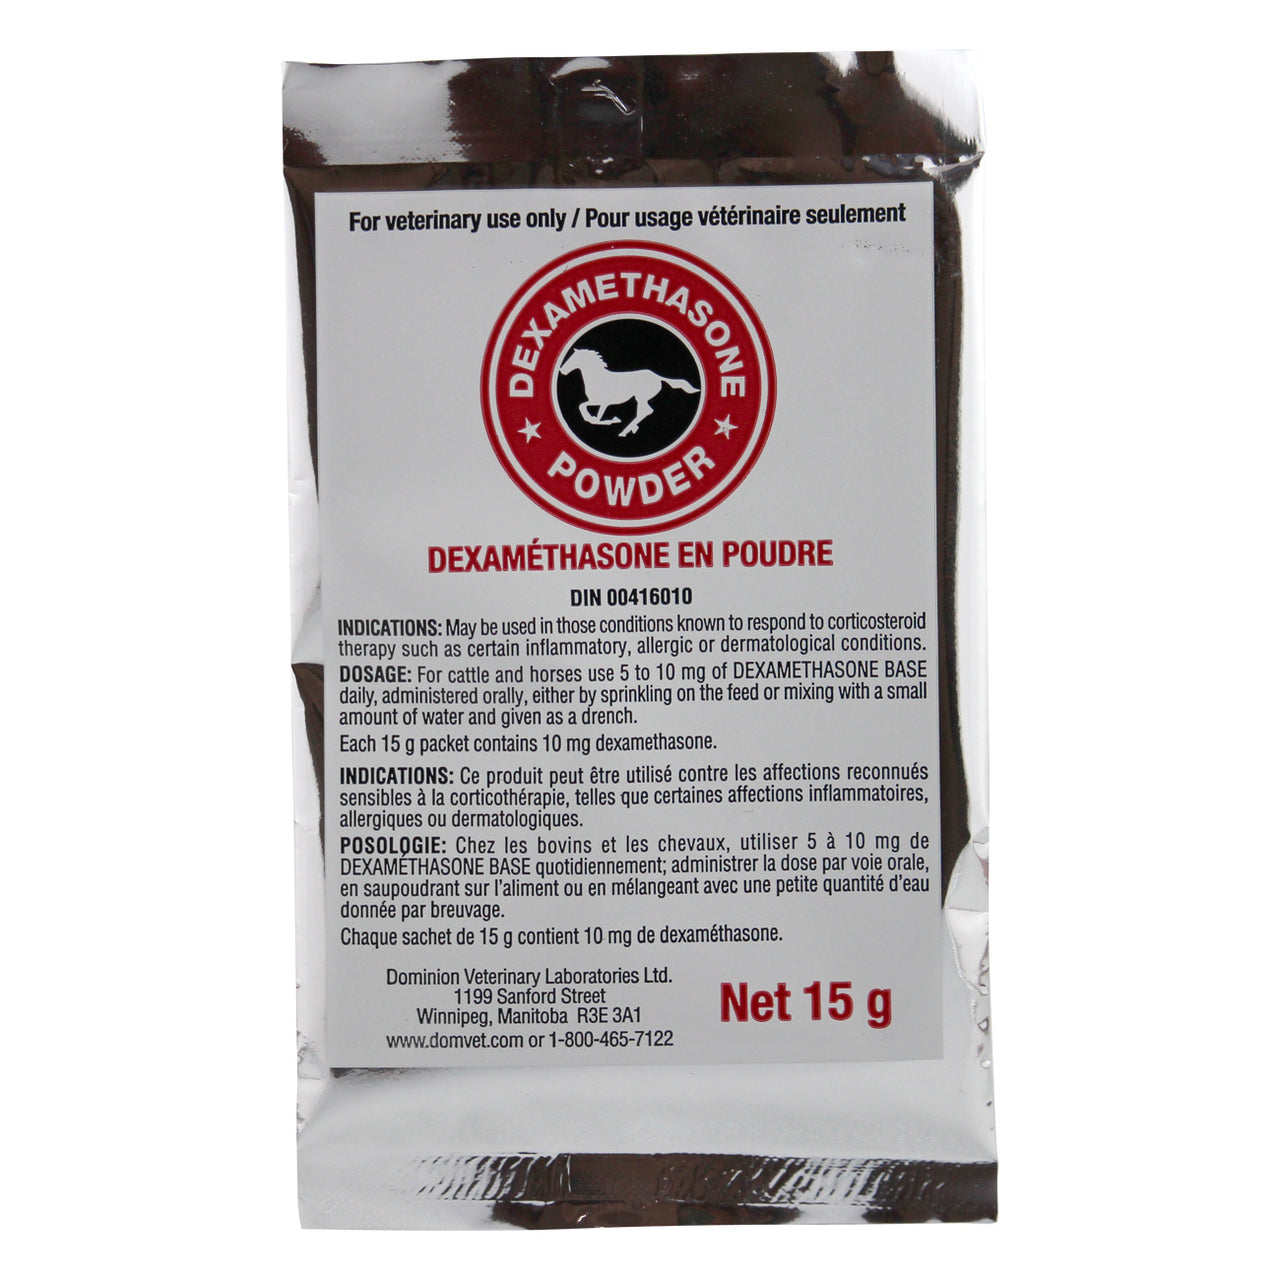 Pharm Vet Dexamethasone Powder (10Mg/15G Pkg.) 15G - Pharmaceuticals Pharm Vet - Canada